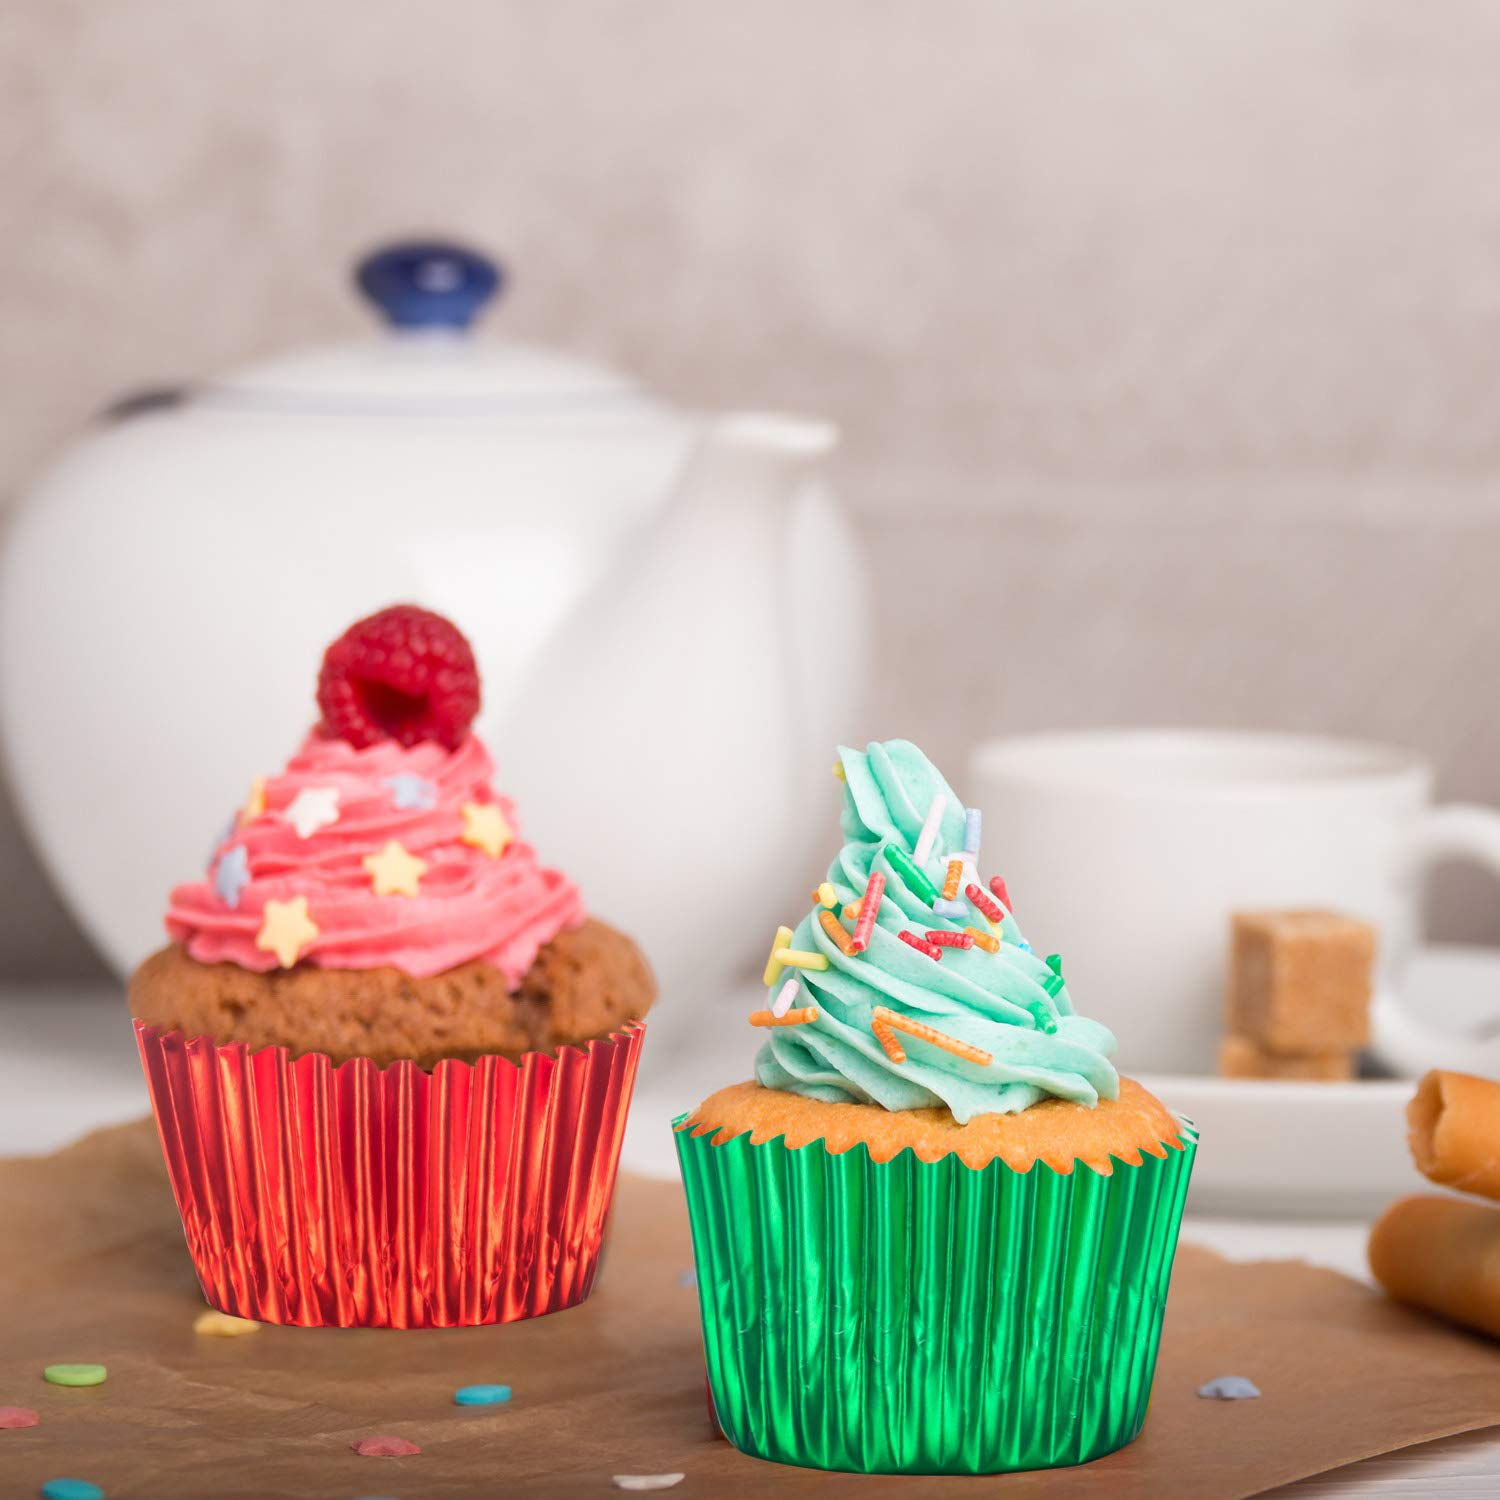 Sumind 10 Colors Paper Baking Cups Foil Cupcake Liners Muffin Case Decoration Cups (400 Pieces) by Sumind (Image #4)